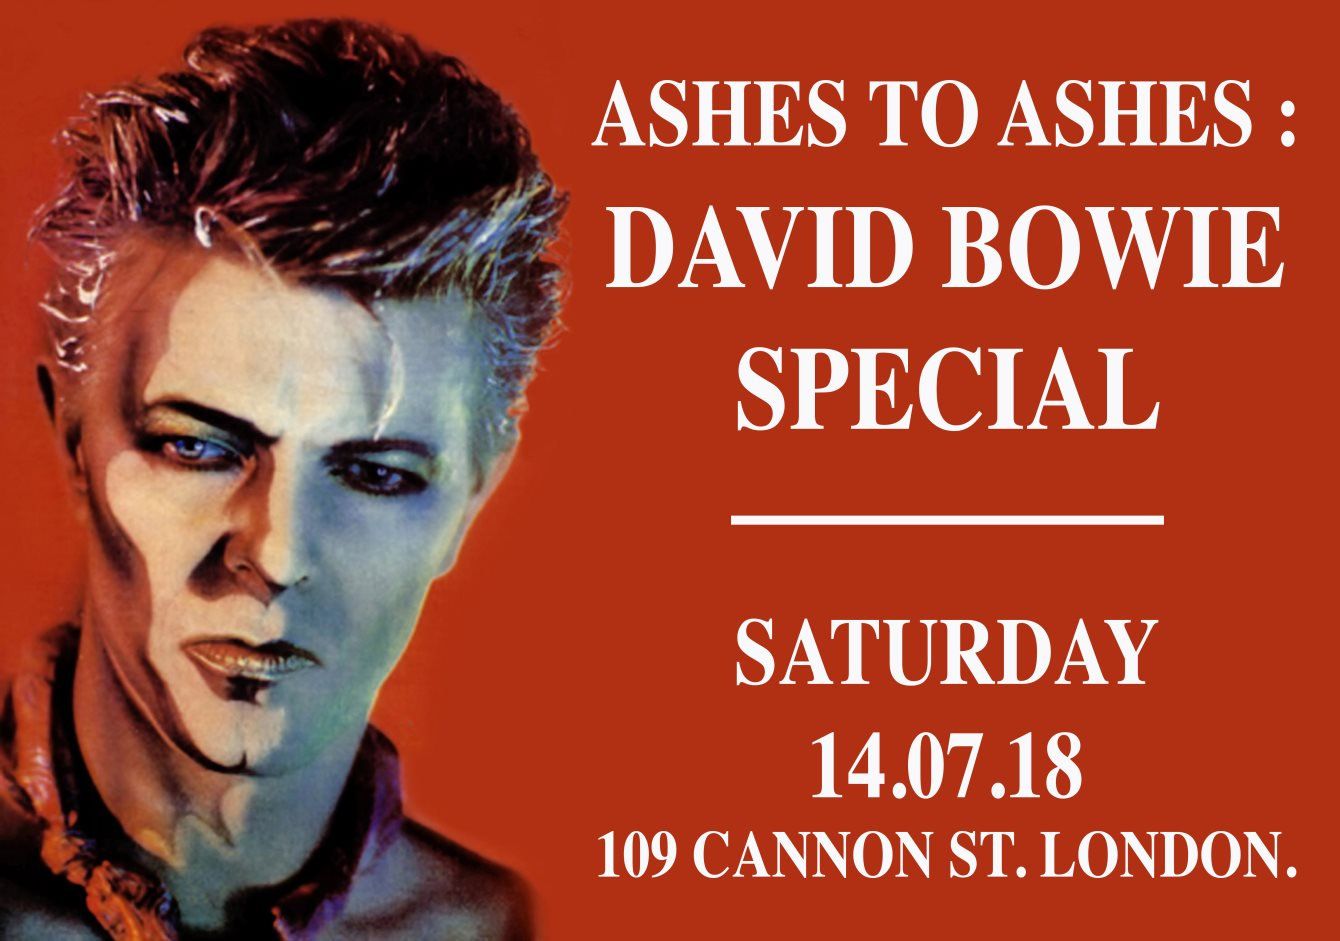 RA: Ashes to Ashes: David Bowie Special at The Cannick Tapps, London